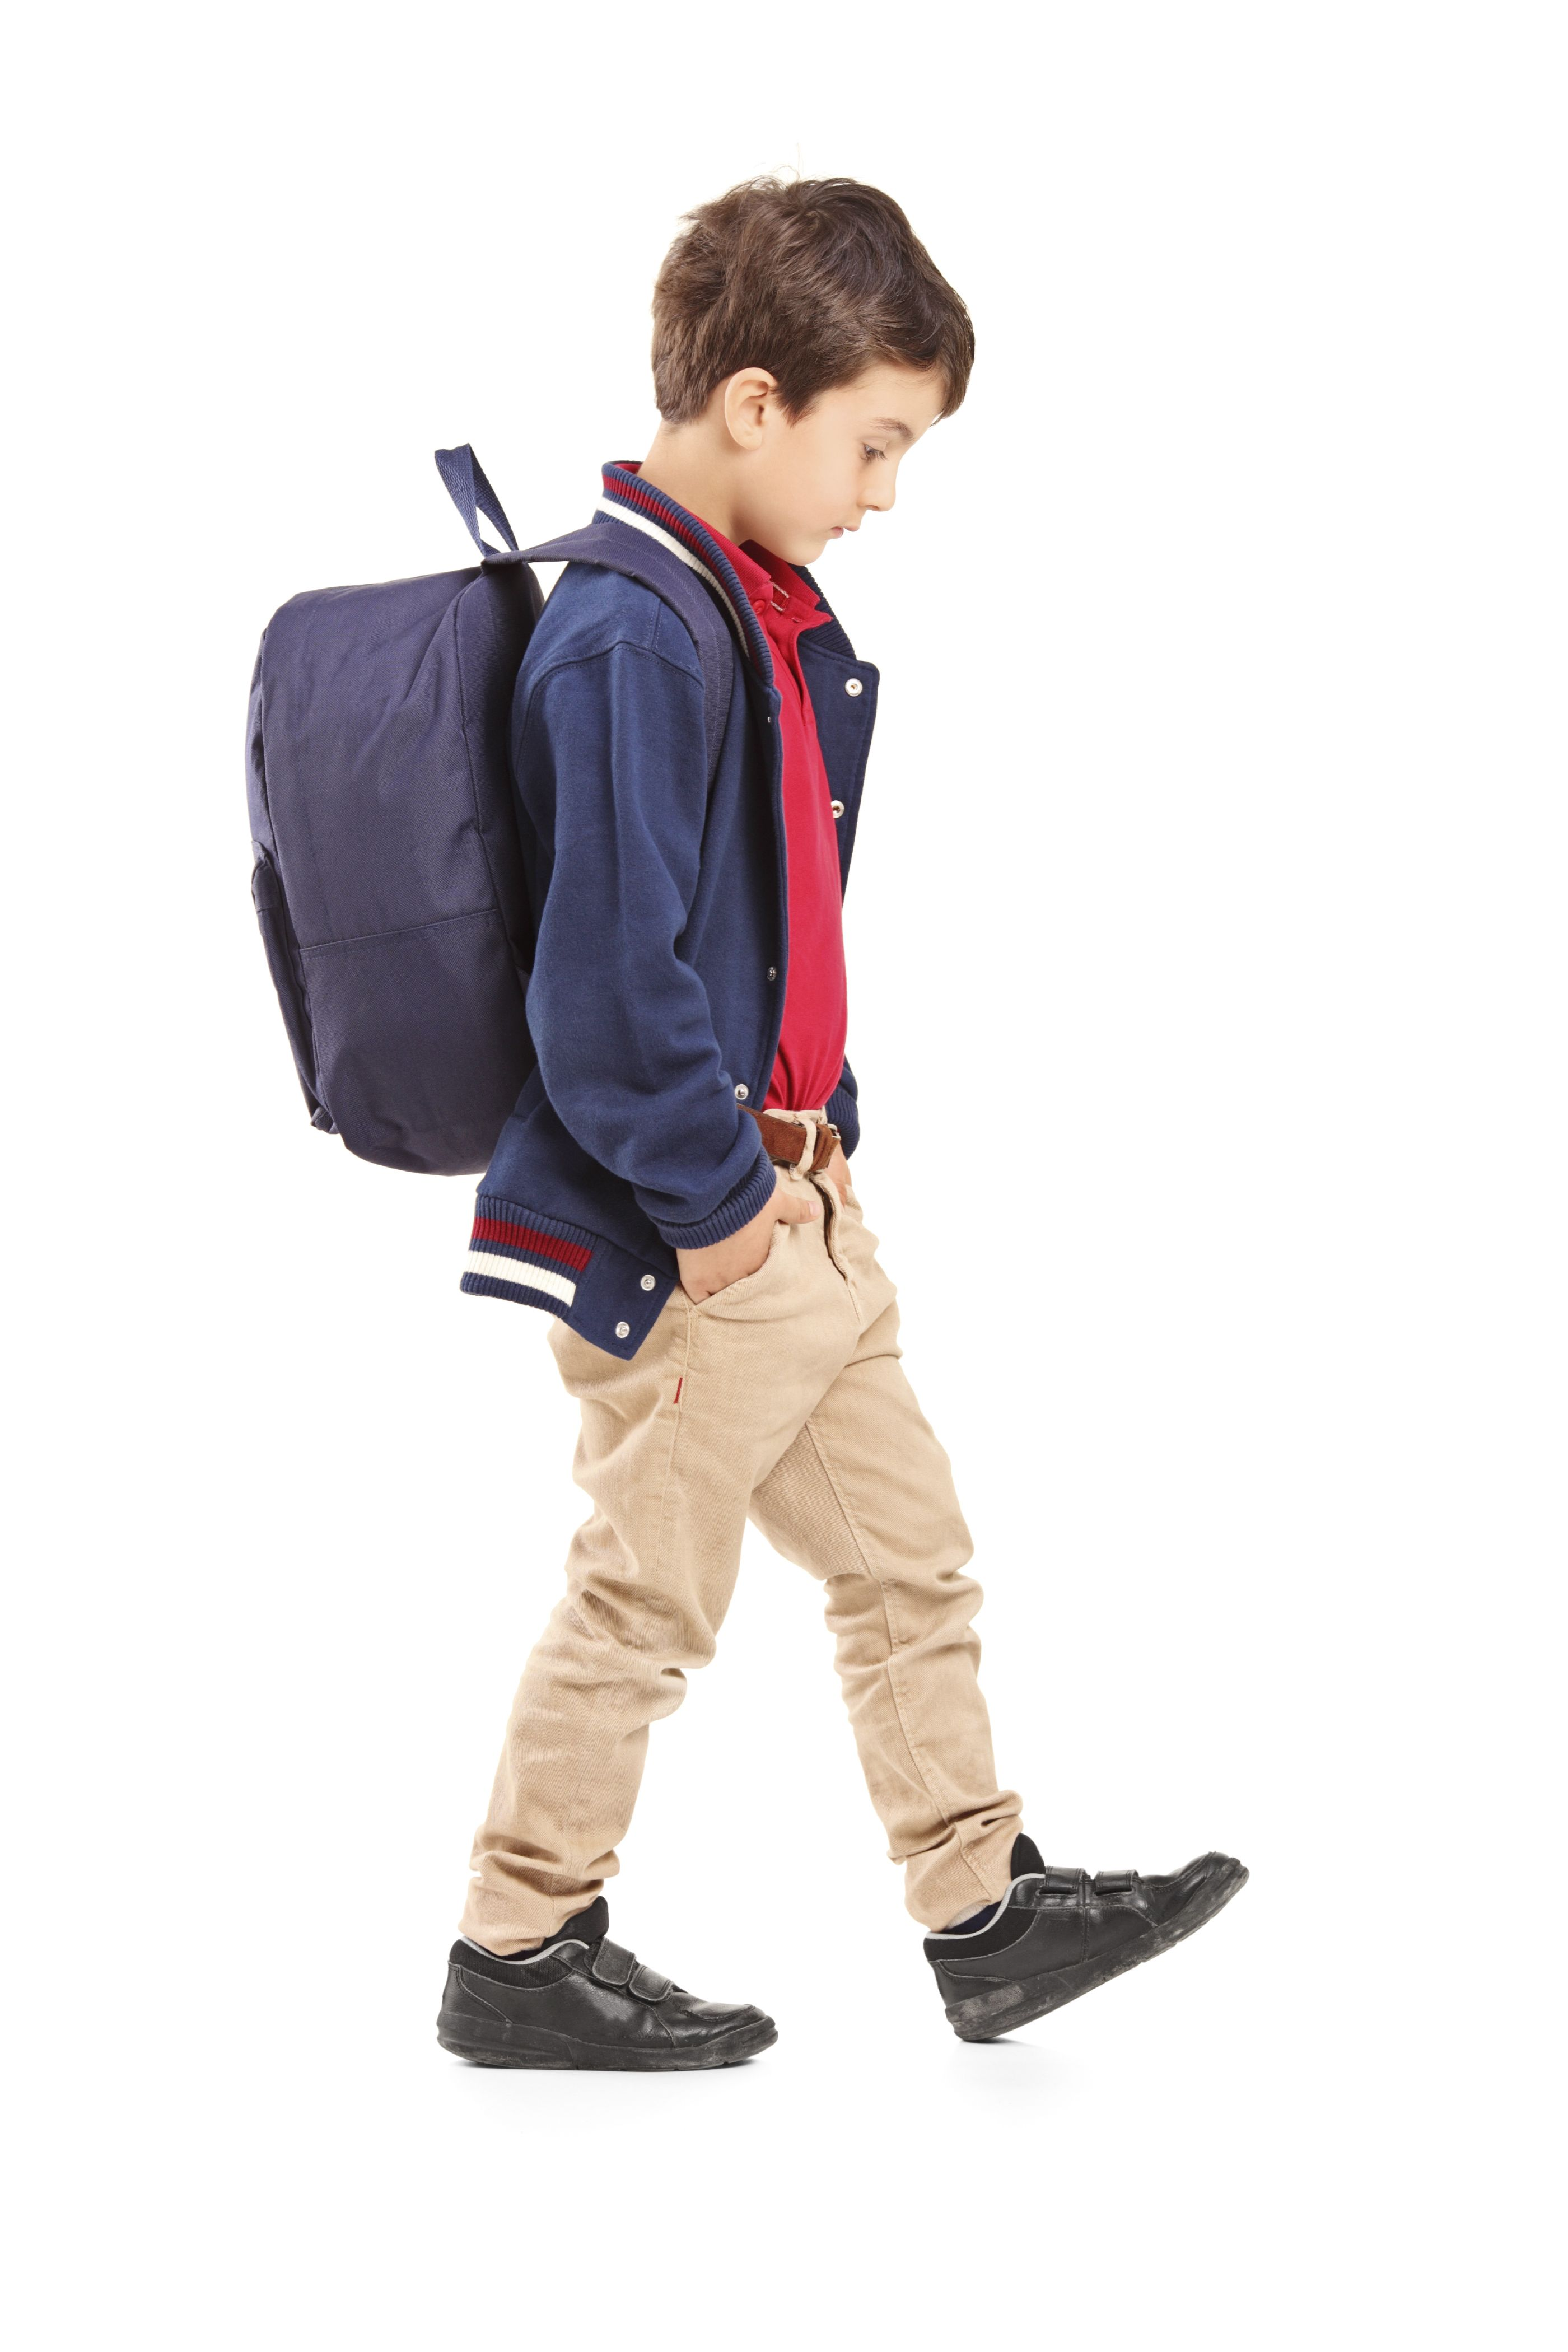 image result for child walking with backpack push penny